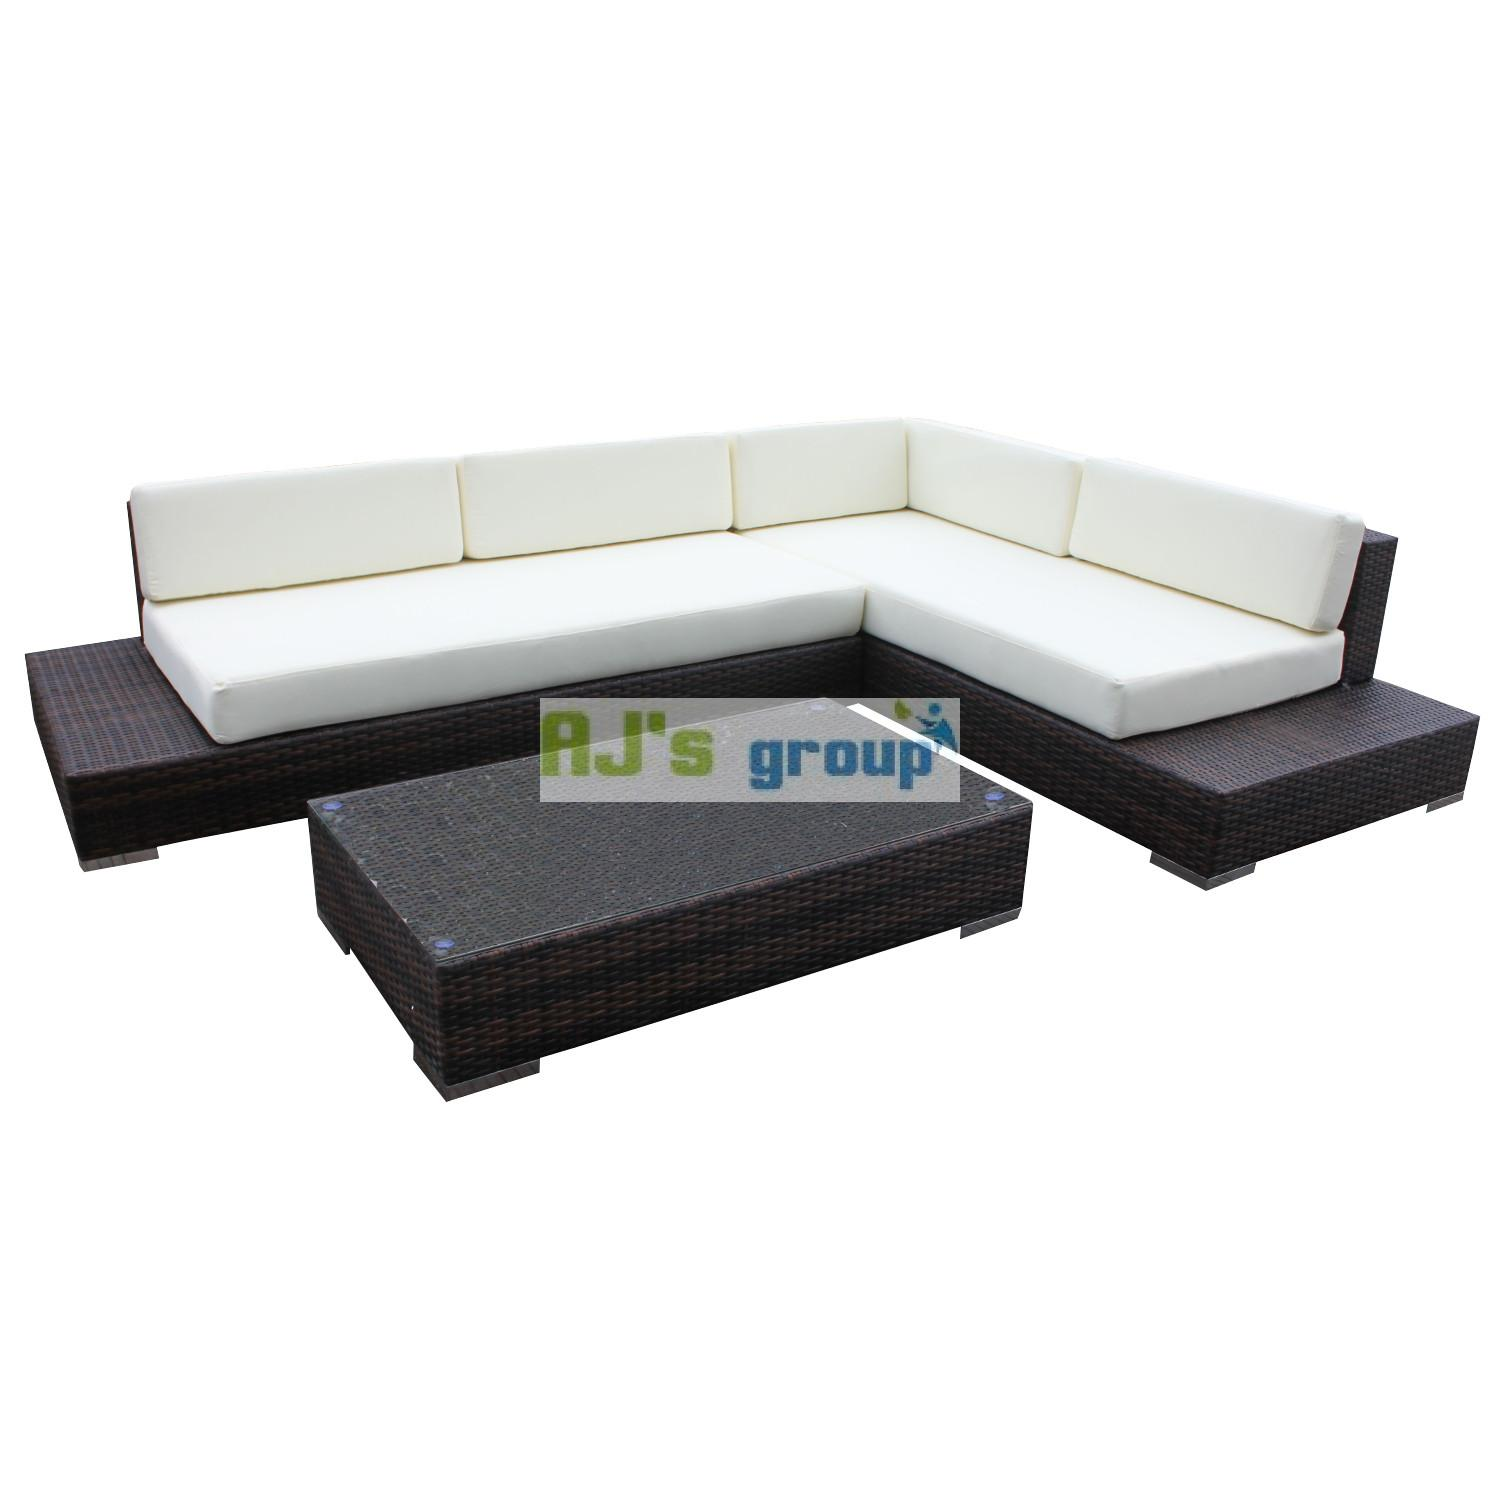 poly rattan gartenm bel atlanta alu garnitur lounge garten sitzgruppe gartenset ebay. Black Bedroom Furniture Sets. Home Design Ideas